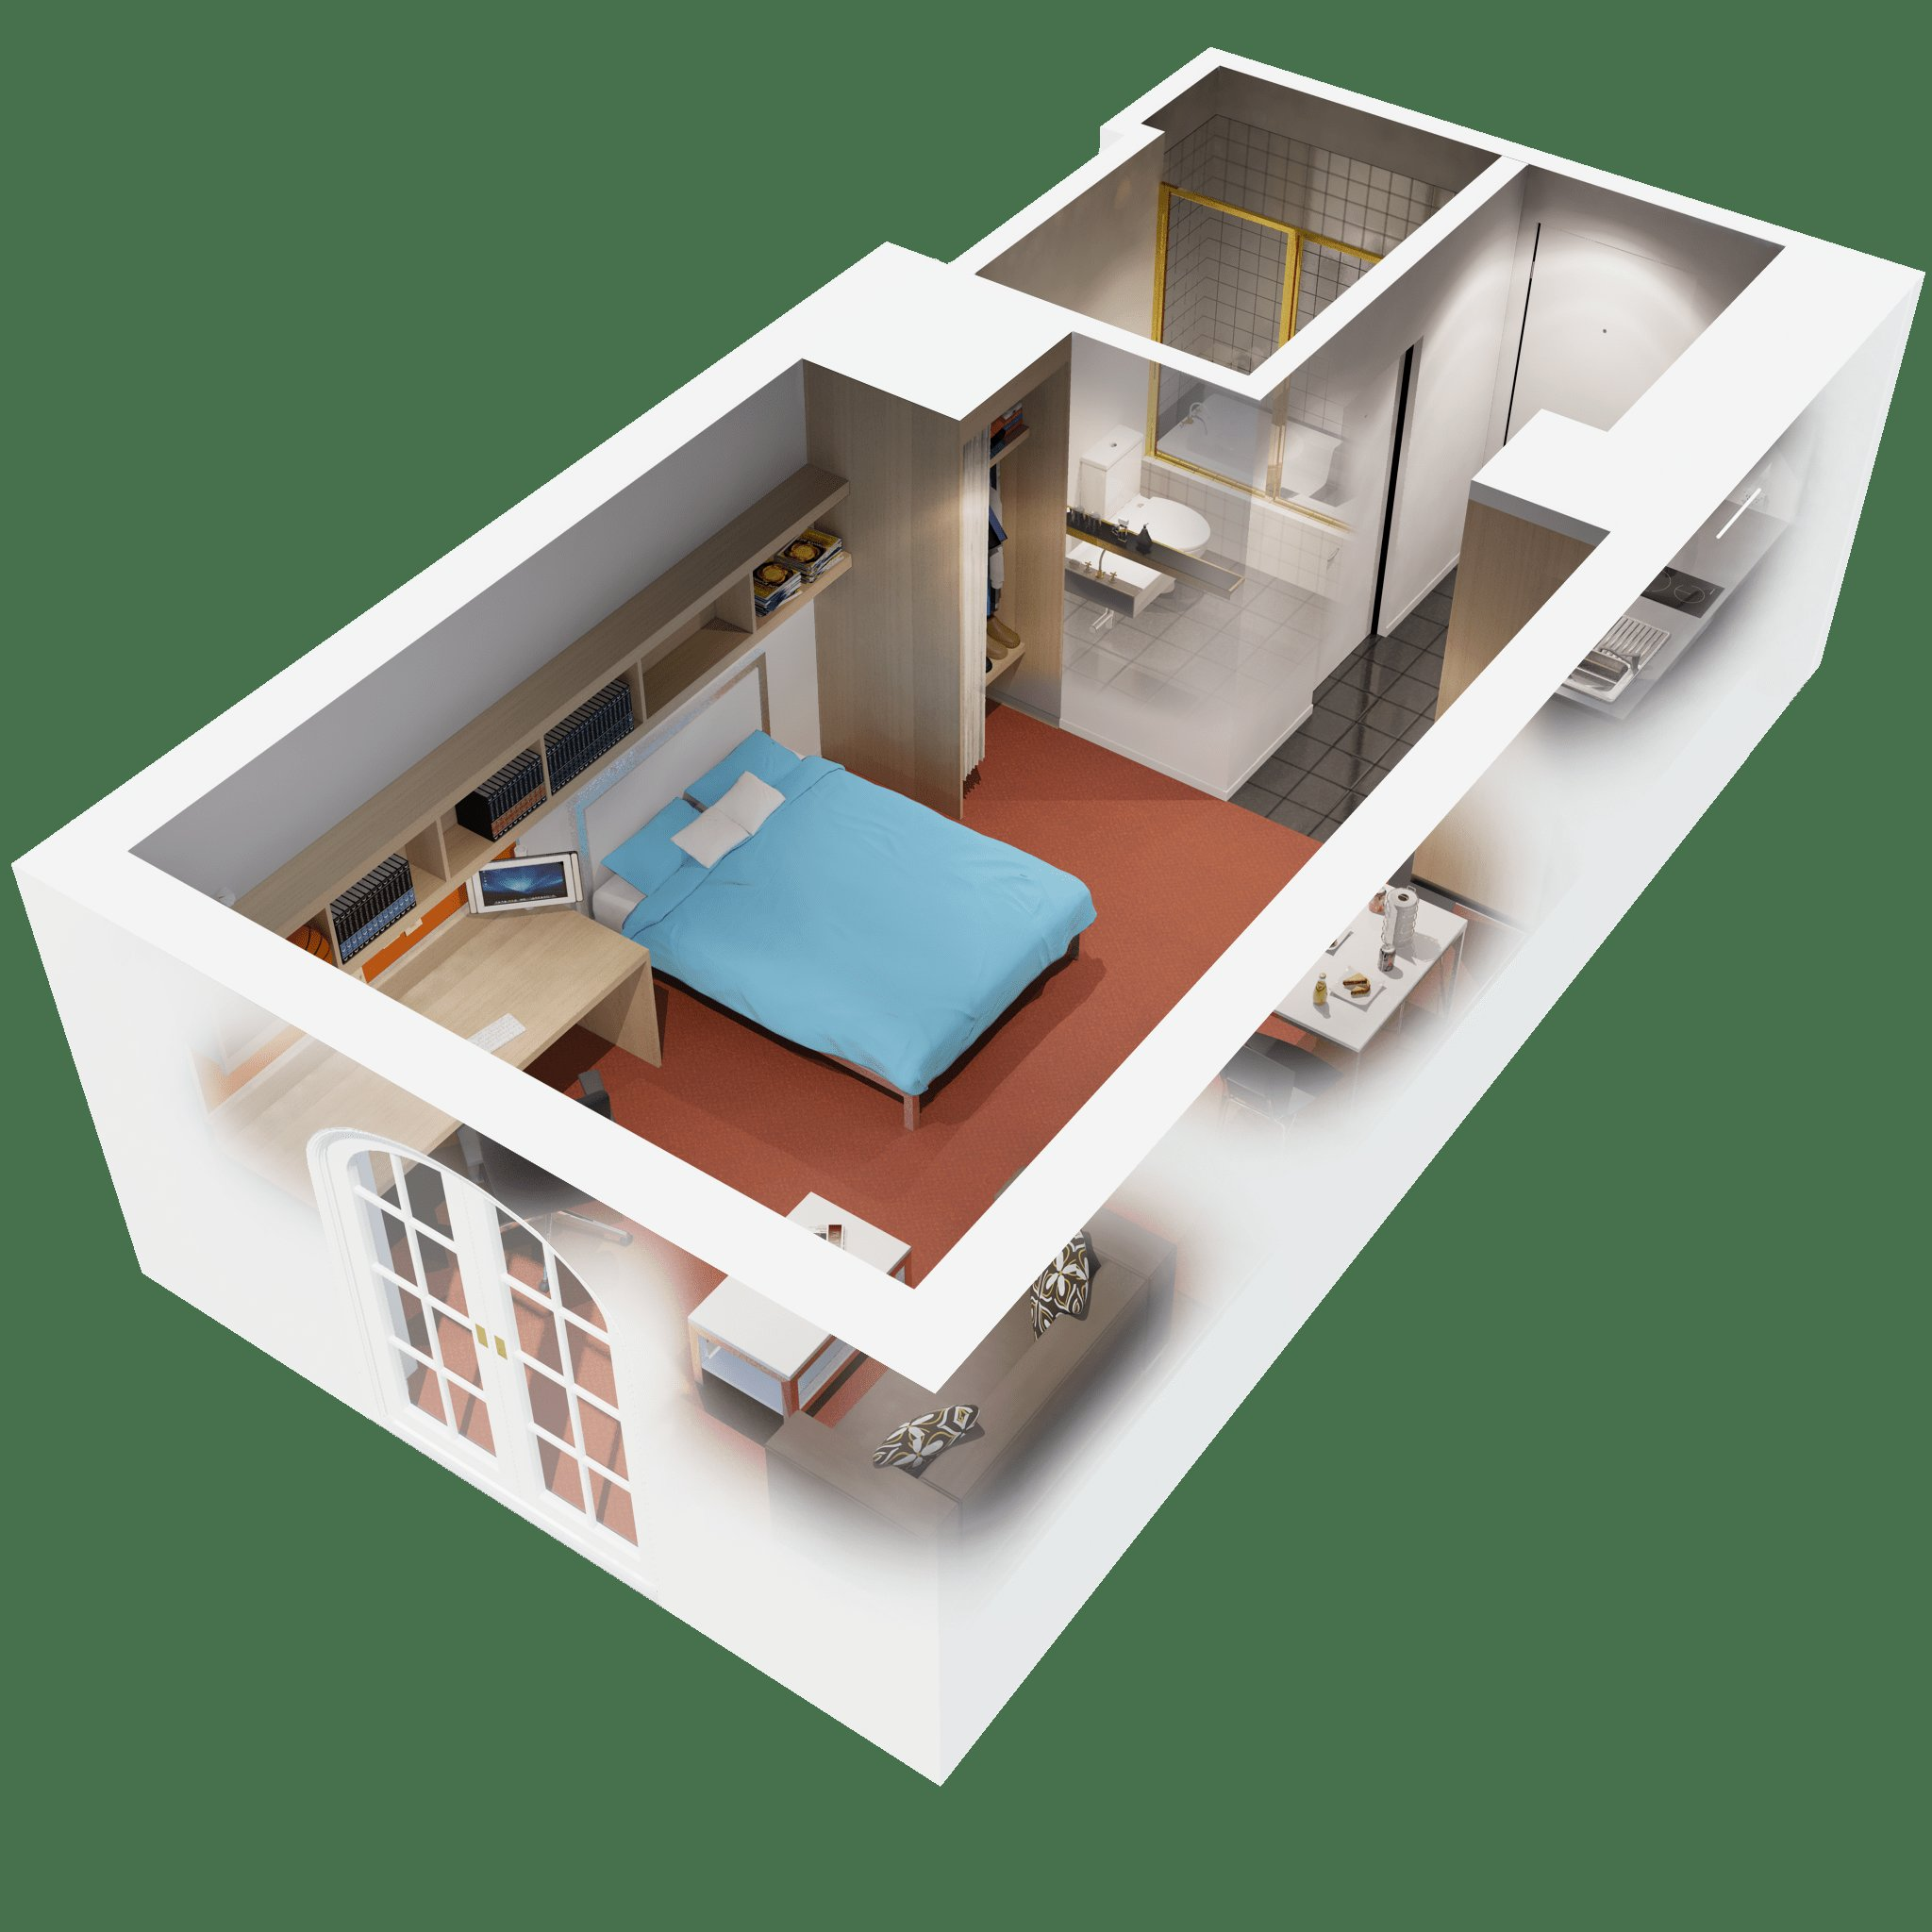 Best Apartments 3D Floor Plan 1 Bedroom Apartment Design Idea Which 1 Bedroom Apartments Is Better With Pictures